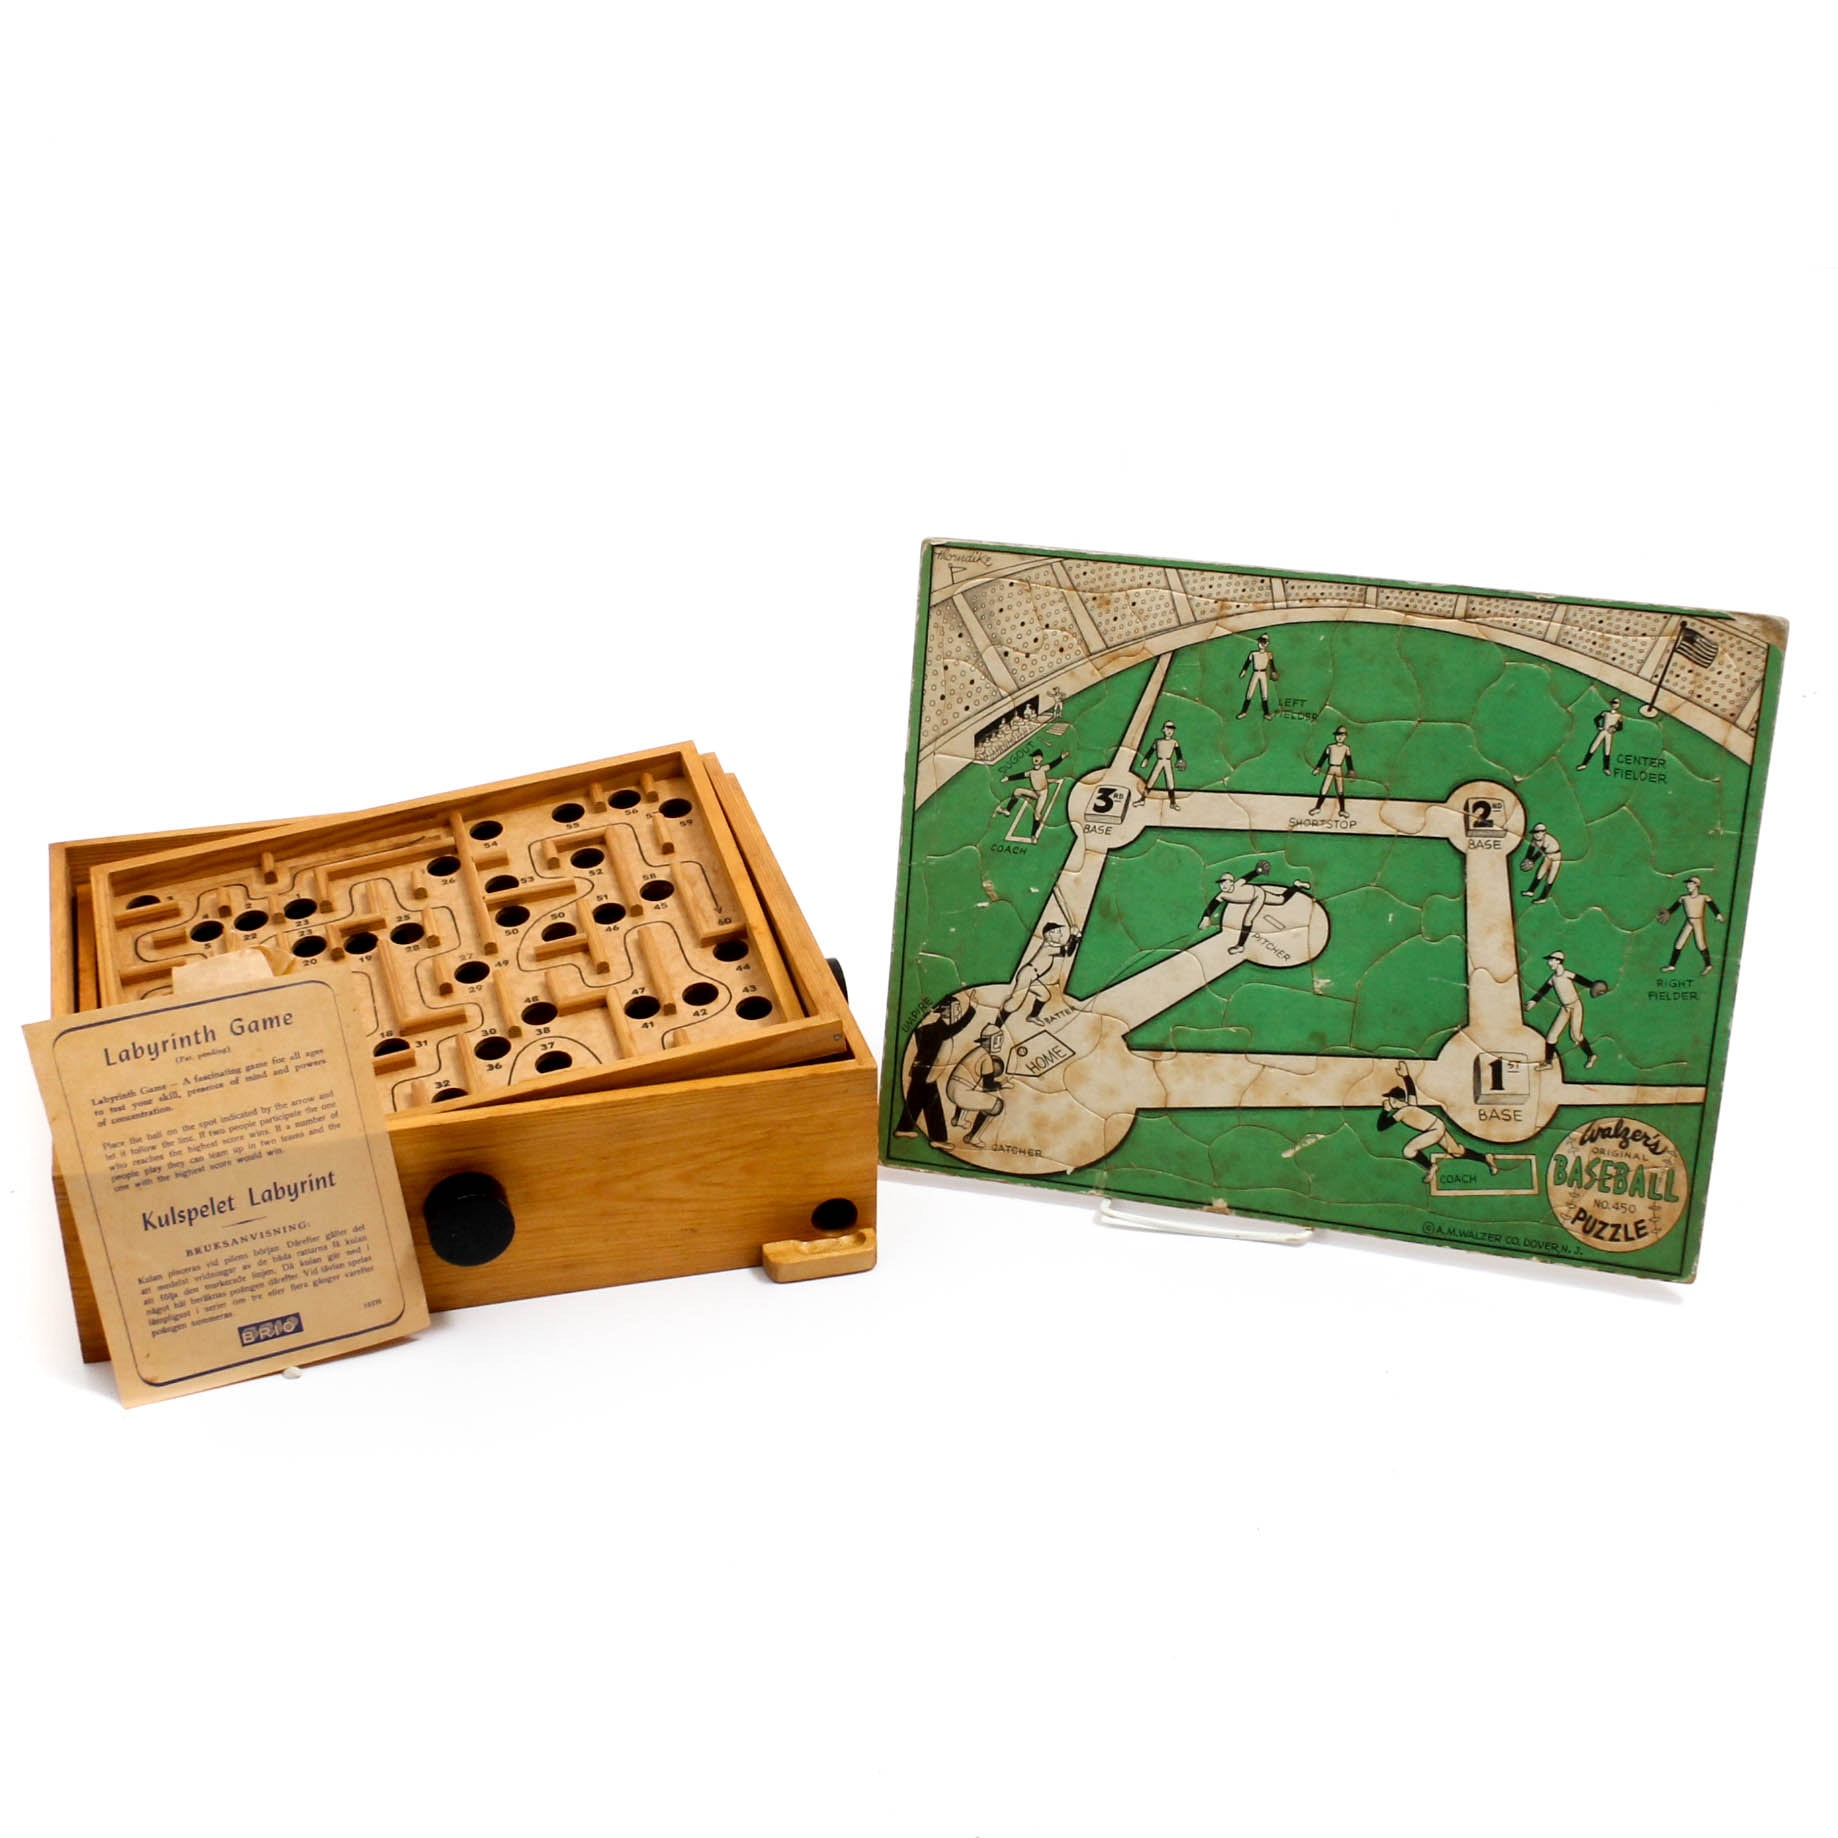 Vintage Games with Labyrinth and Baseball Puzzle